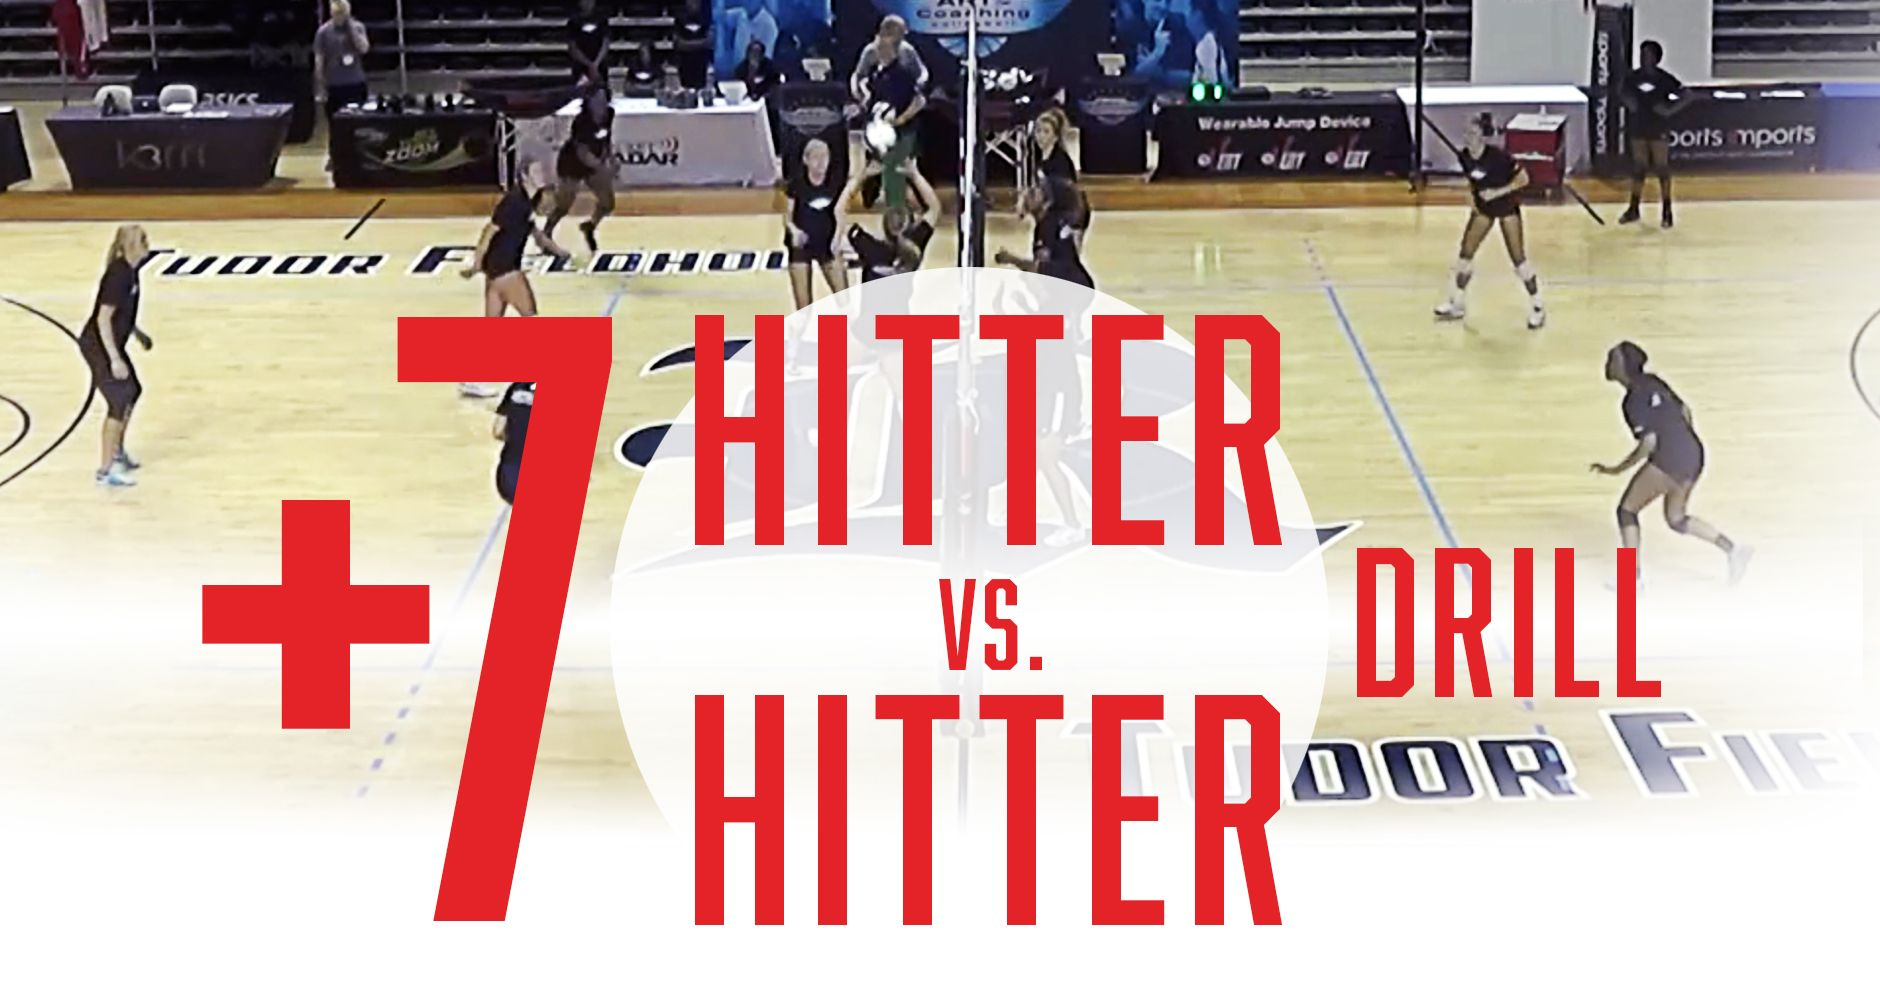 7 Hitter Vs Hitter Drill From Mark Barnard Coaching Volleyball Volleyball Practice Volleyball Workouts